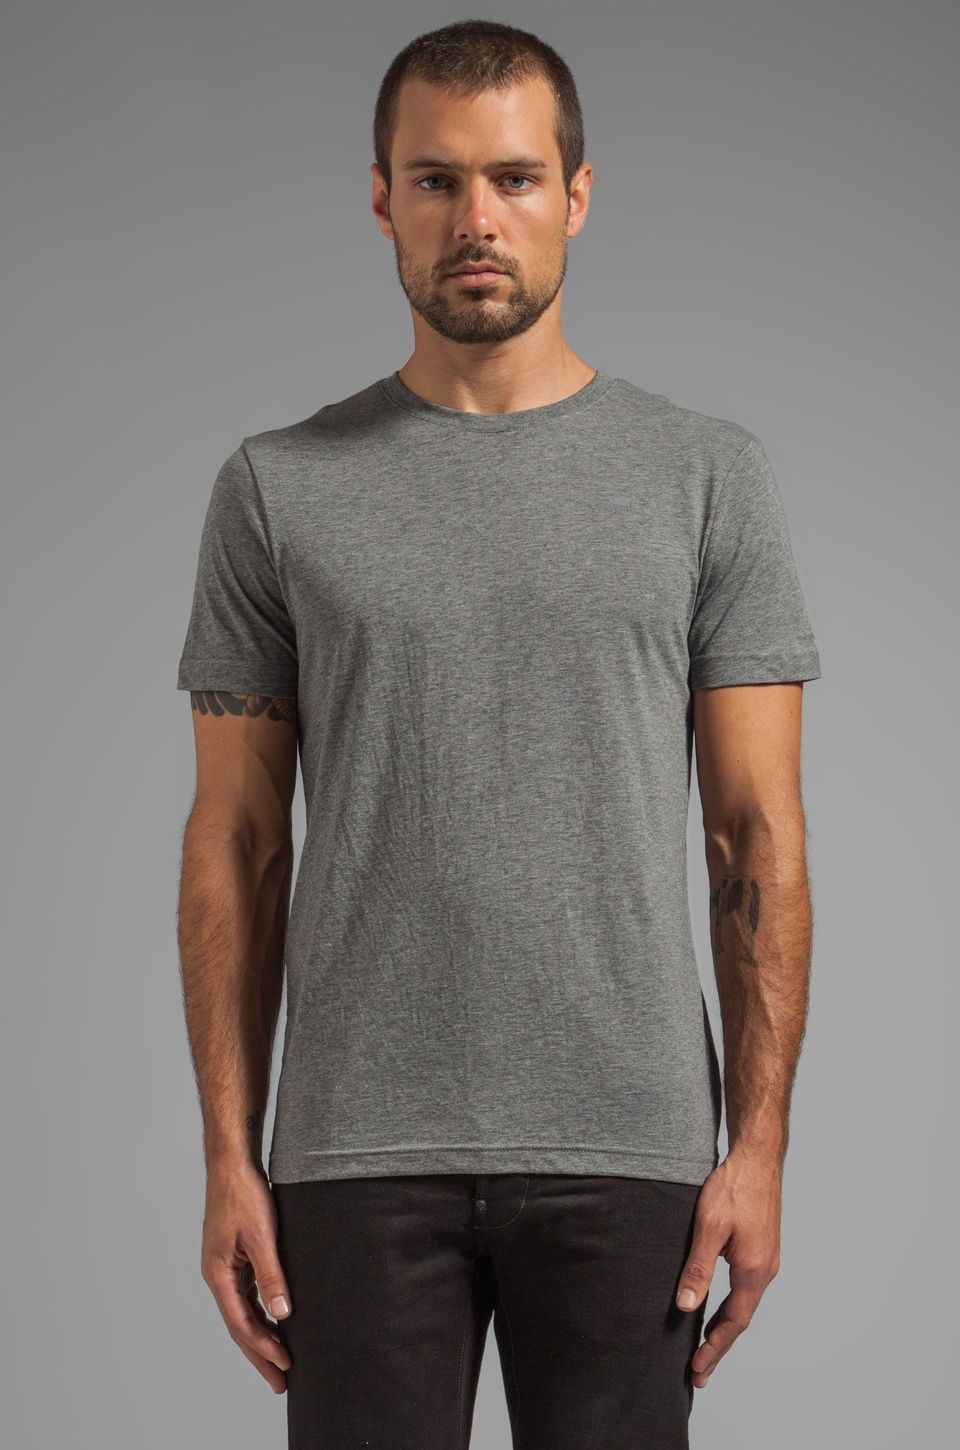 G-Star Crew Neck Double Pack in Castor Heather